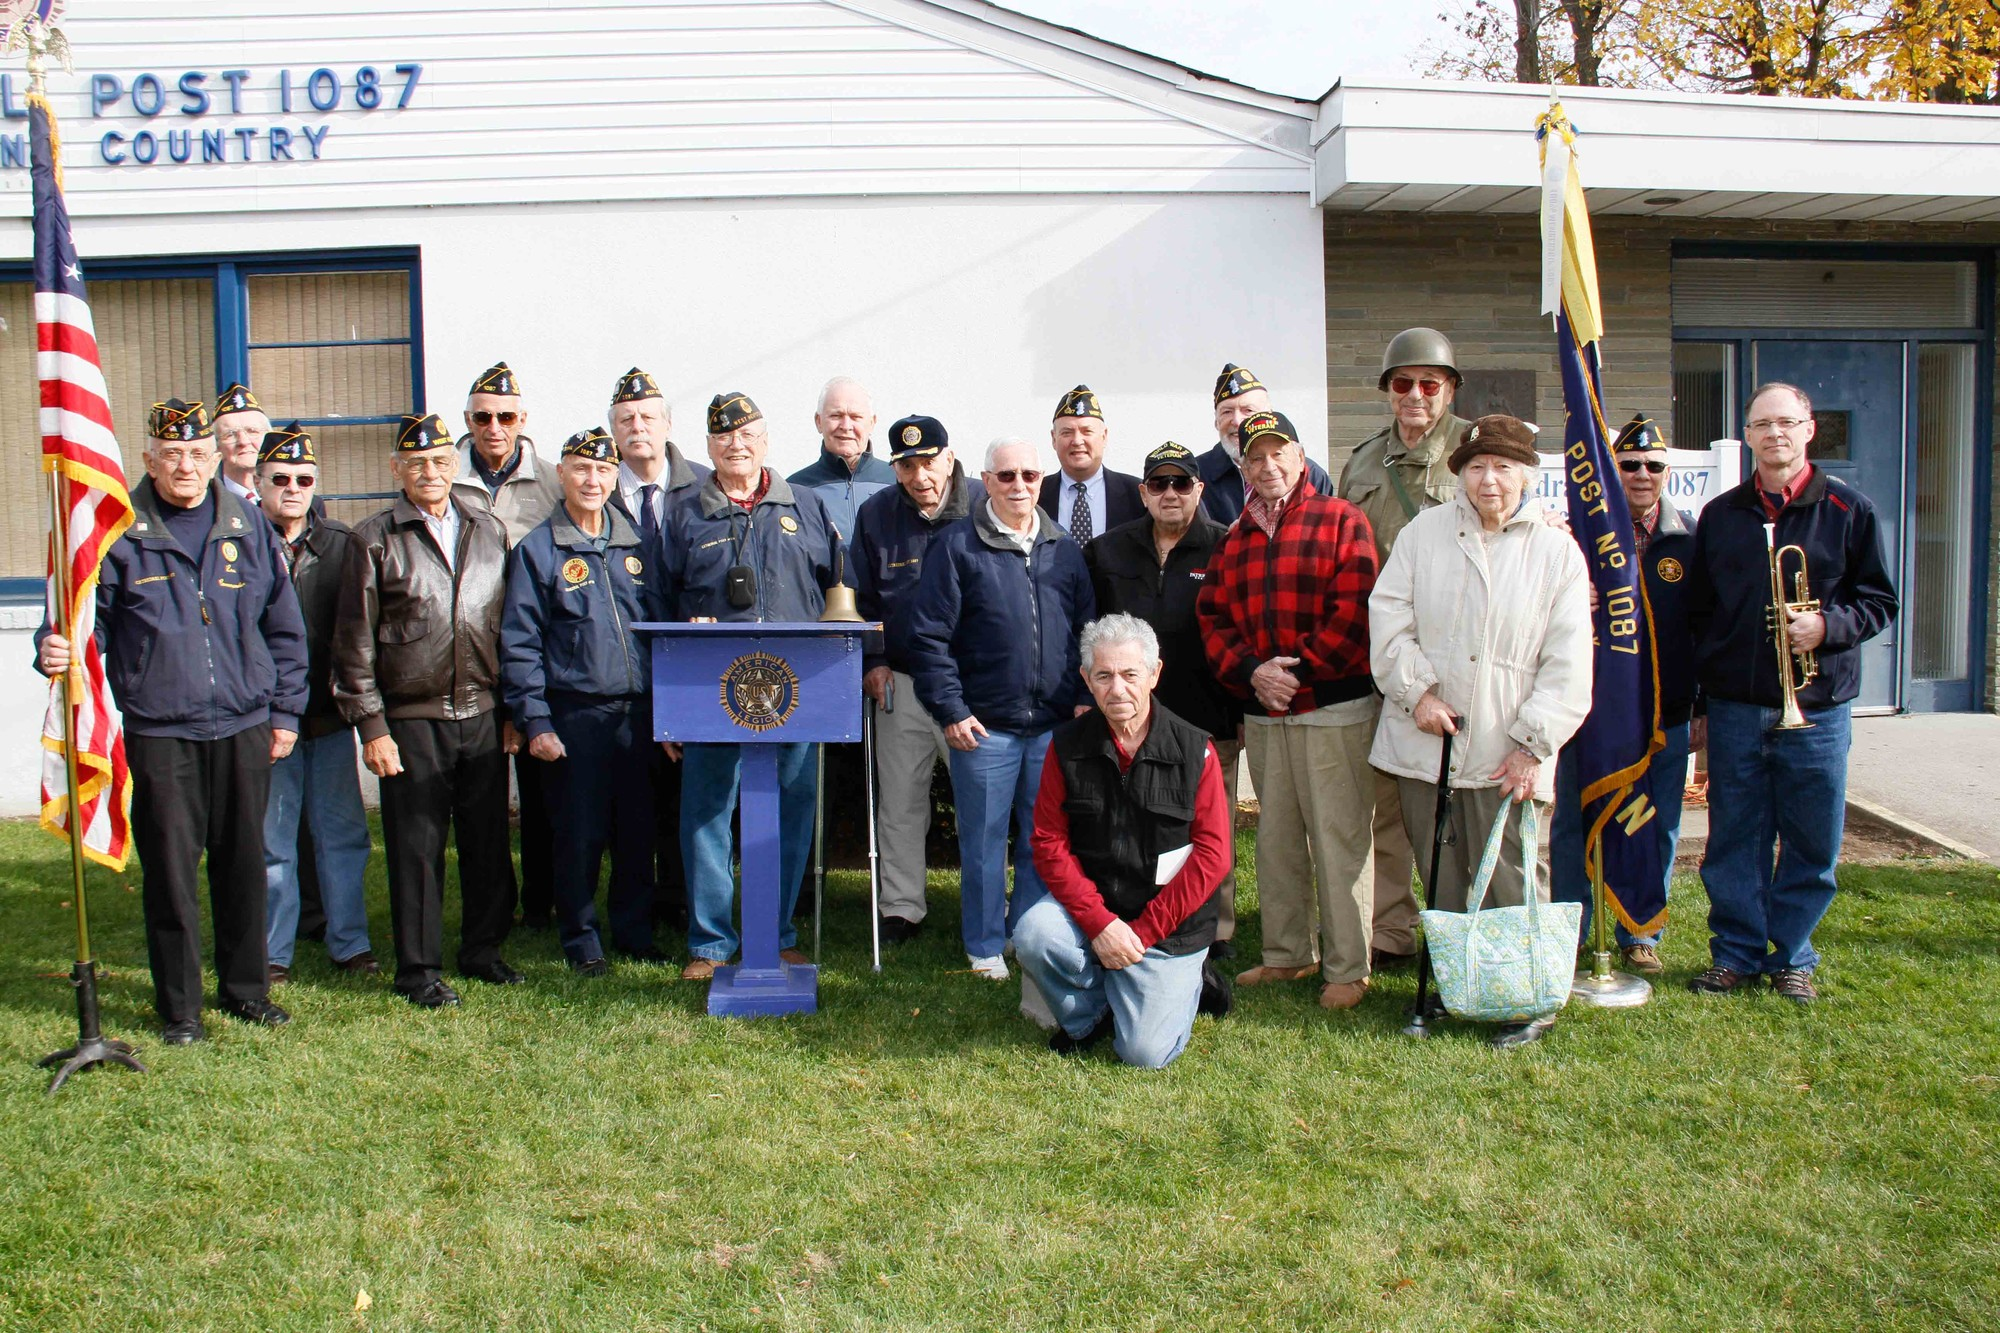 West Hempstead veterans and residentsgathered outside American Legion Cathedral Post 1087 for this year